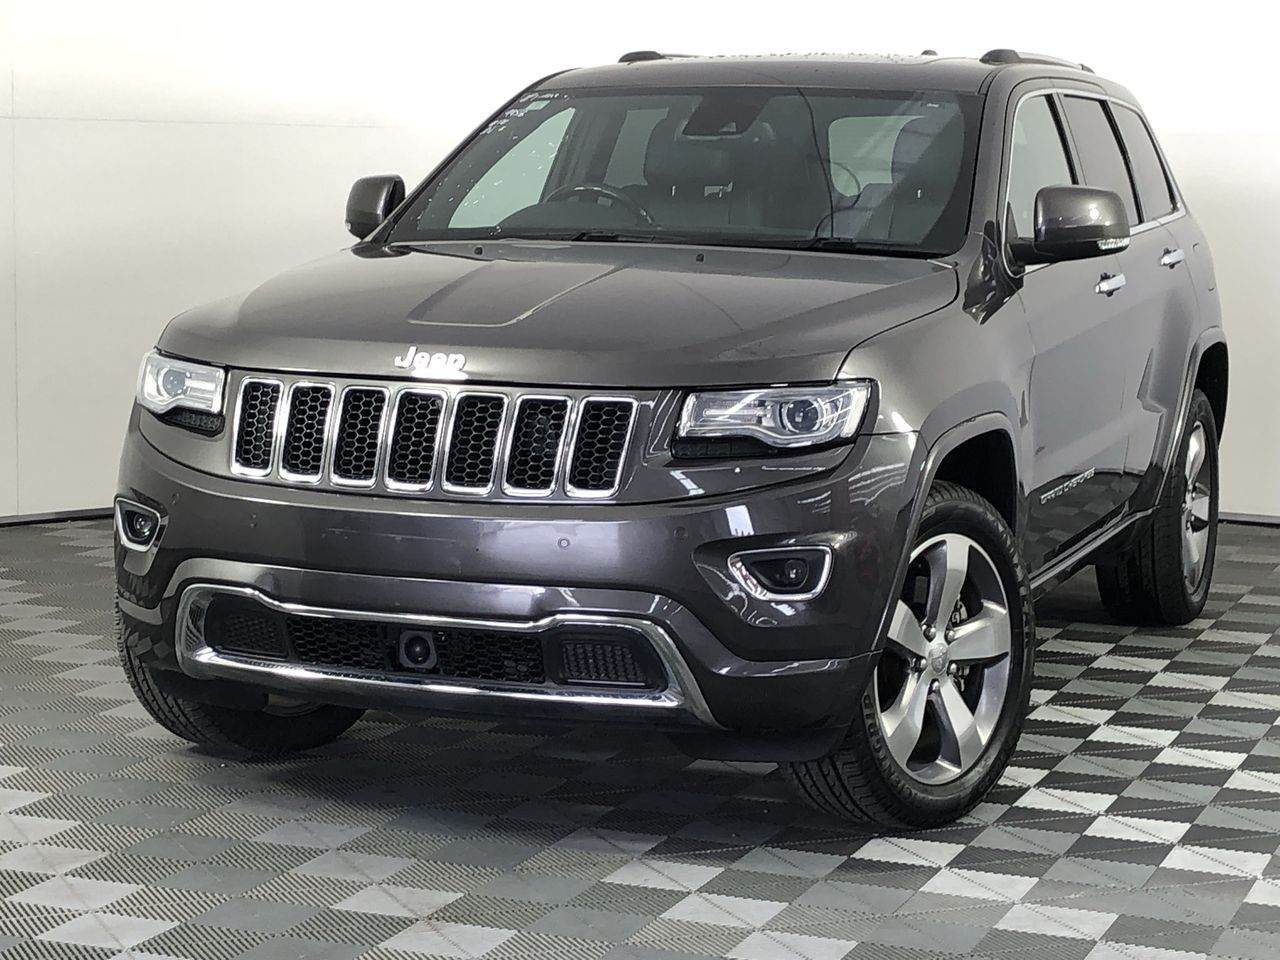 2013 Jeep Grand Cherokee Overland (4x4) WK Automatic - 8 Speed Wagon